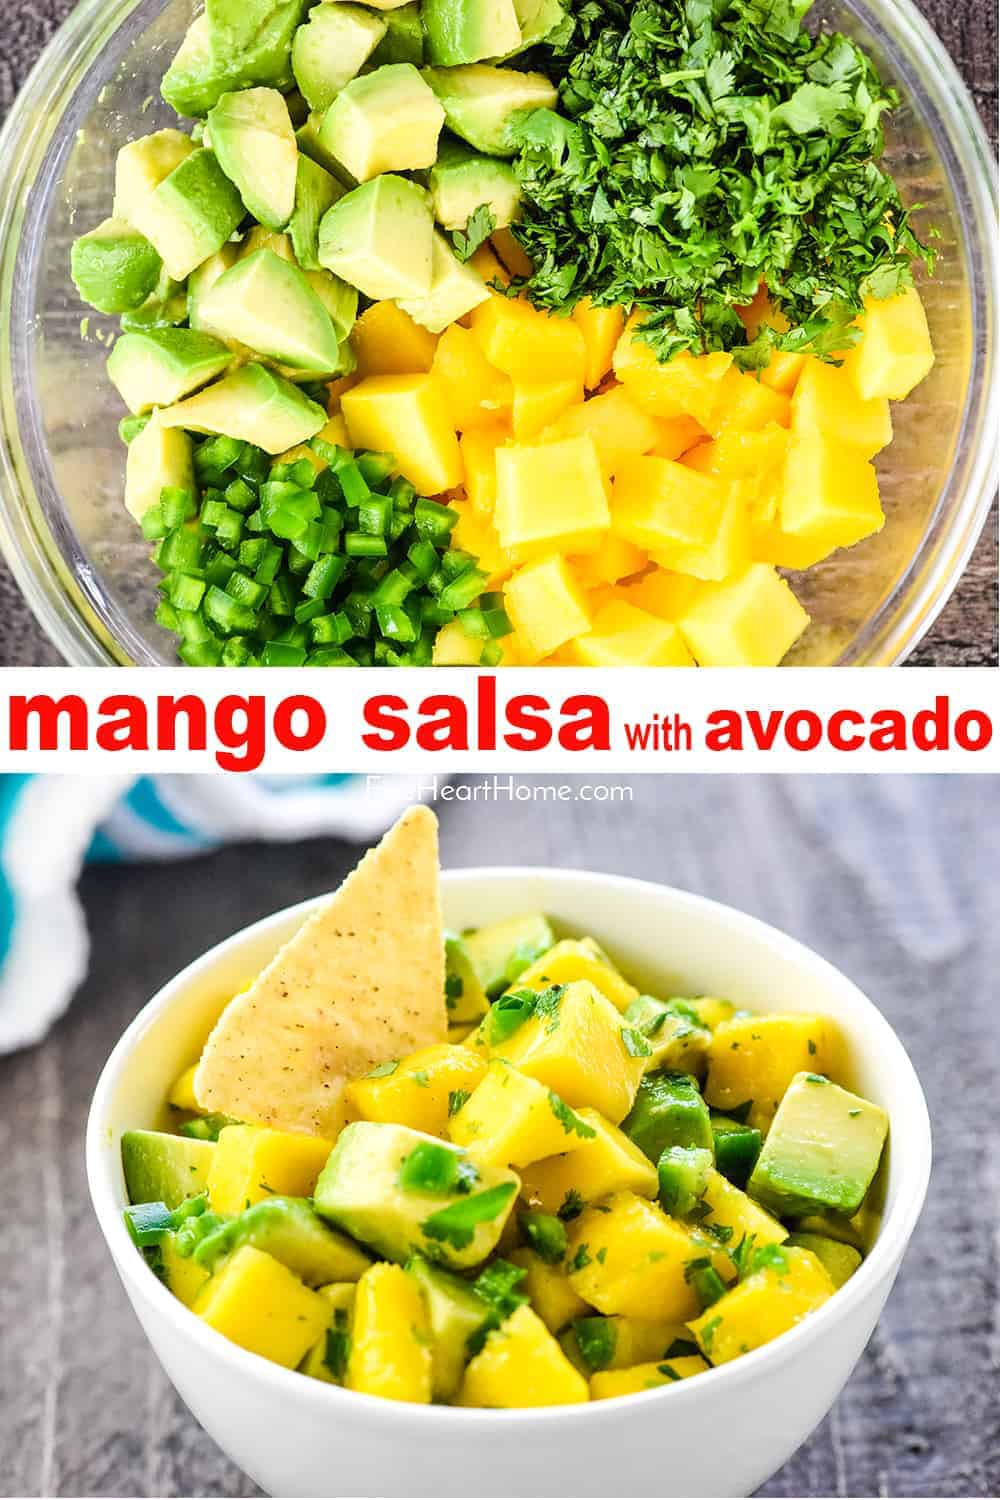 Mango Salsa ~ a fresh, simple recipe bursting with loads of summer flavor from sweet mango, creamy avocado, zesty jalapeño, and zippy cilantro...perfect as a dip or over fish! | FiveHeartHome.com